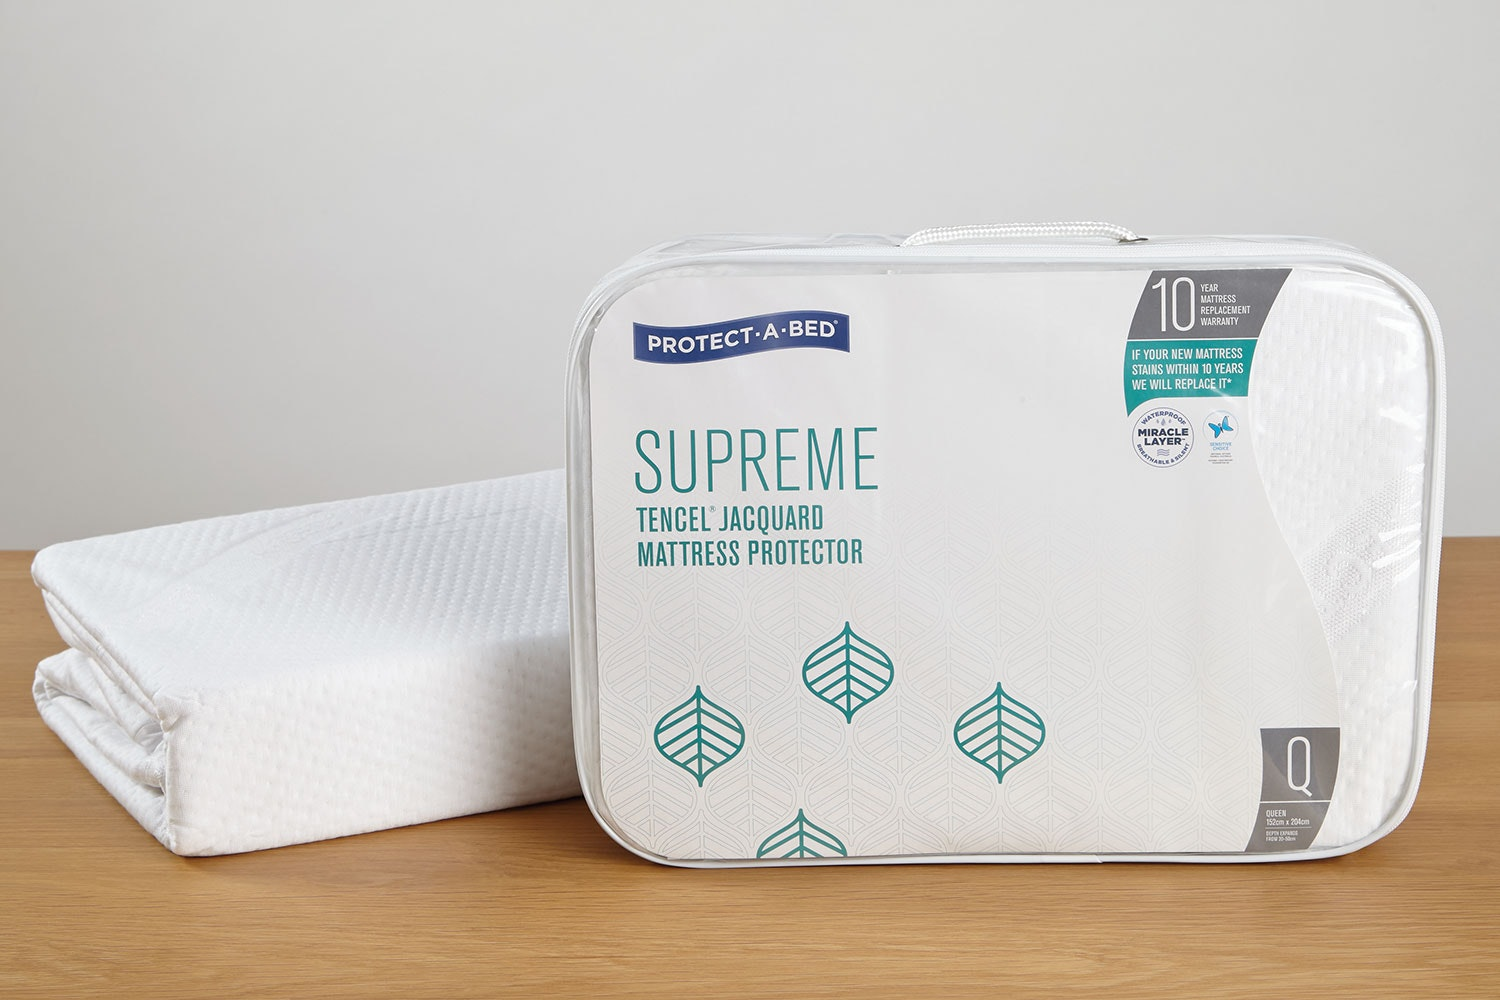 Supreme Mattress Protector by Protect-A-Bed